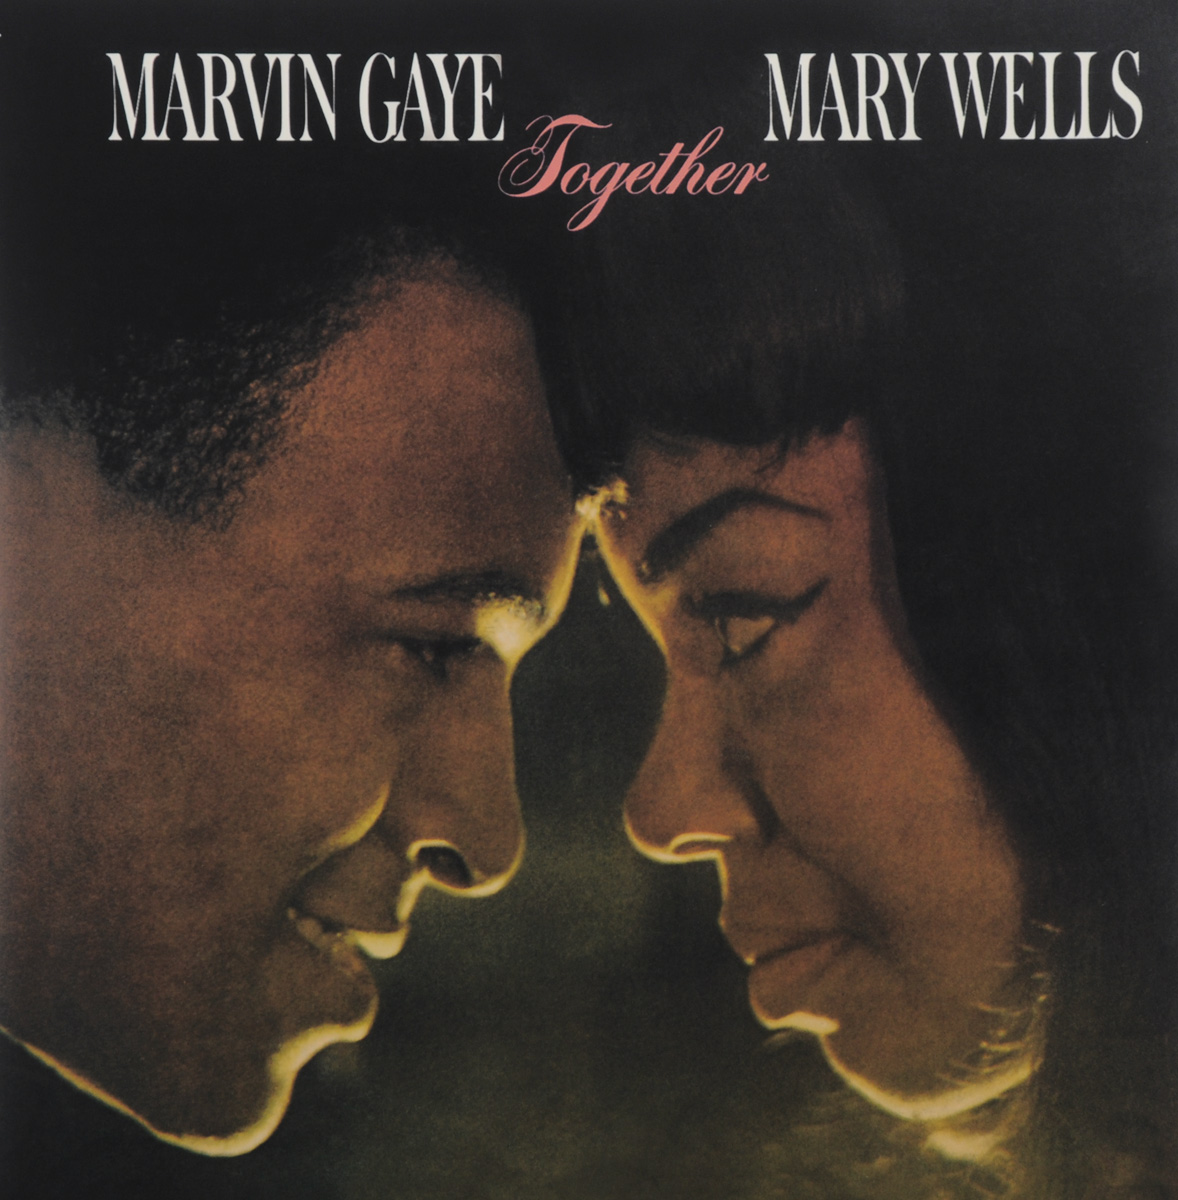 Марвин Гэй,Мэри Уэллс Marvin Gaye And Mary Wells. Together (LP) марвин гэй marvin gaye trouble man motion picture soundtrack lp